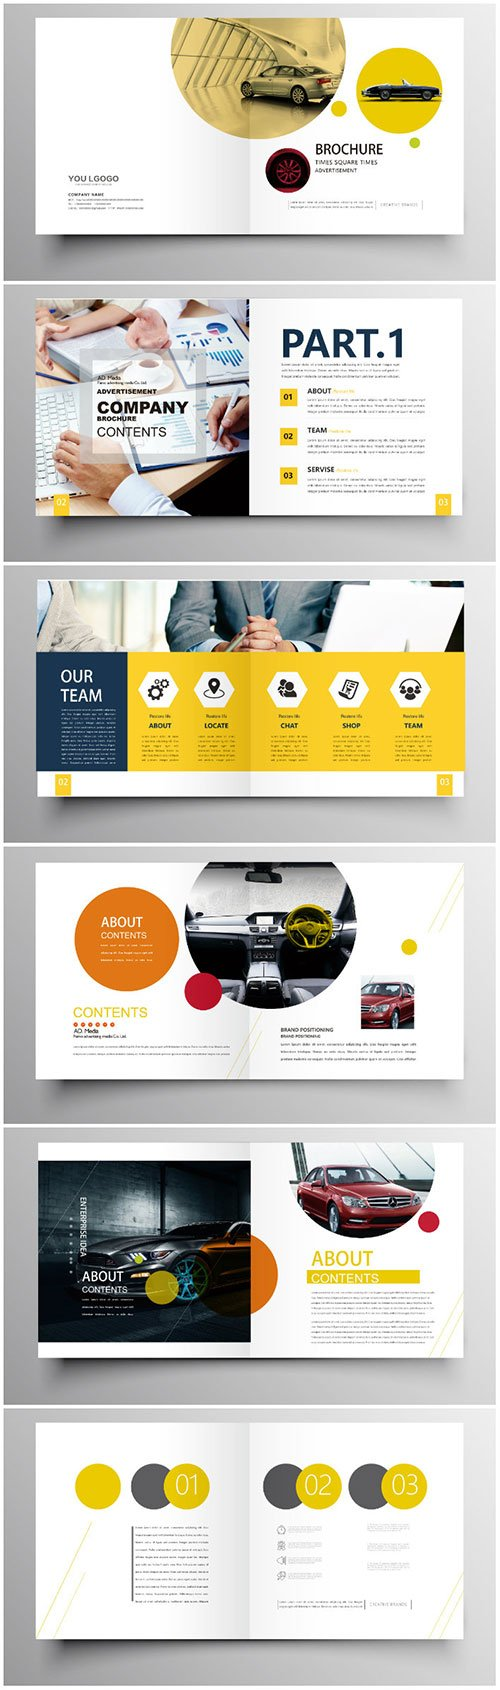 Brochure template vector layout design, corporate business annual report, magazine, flyer mockup # 188